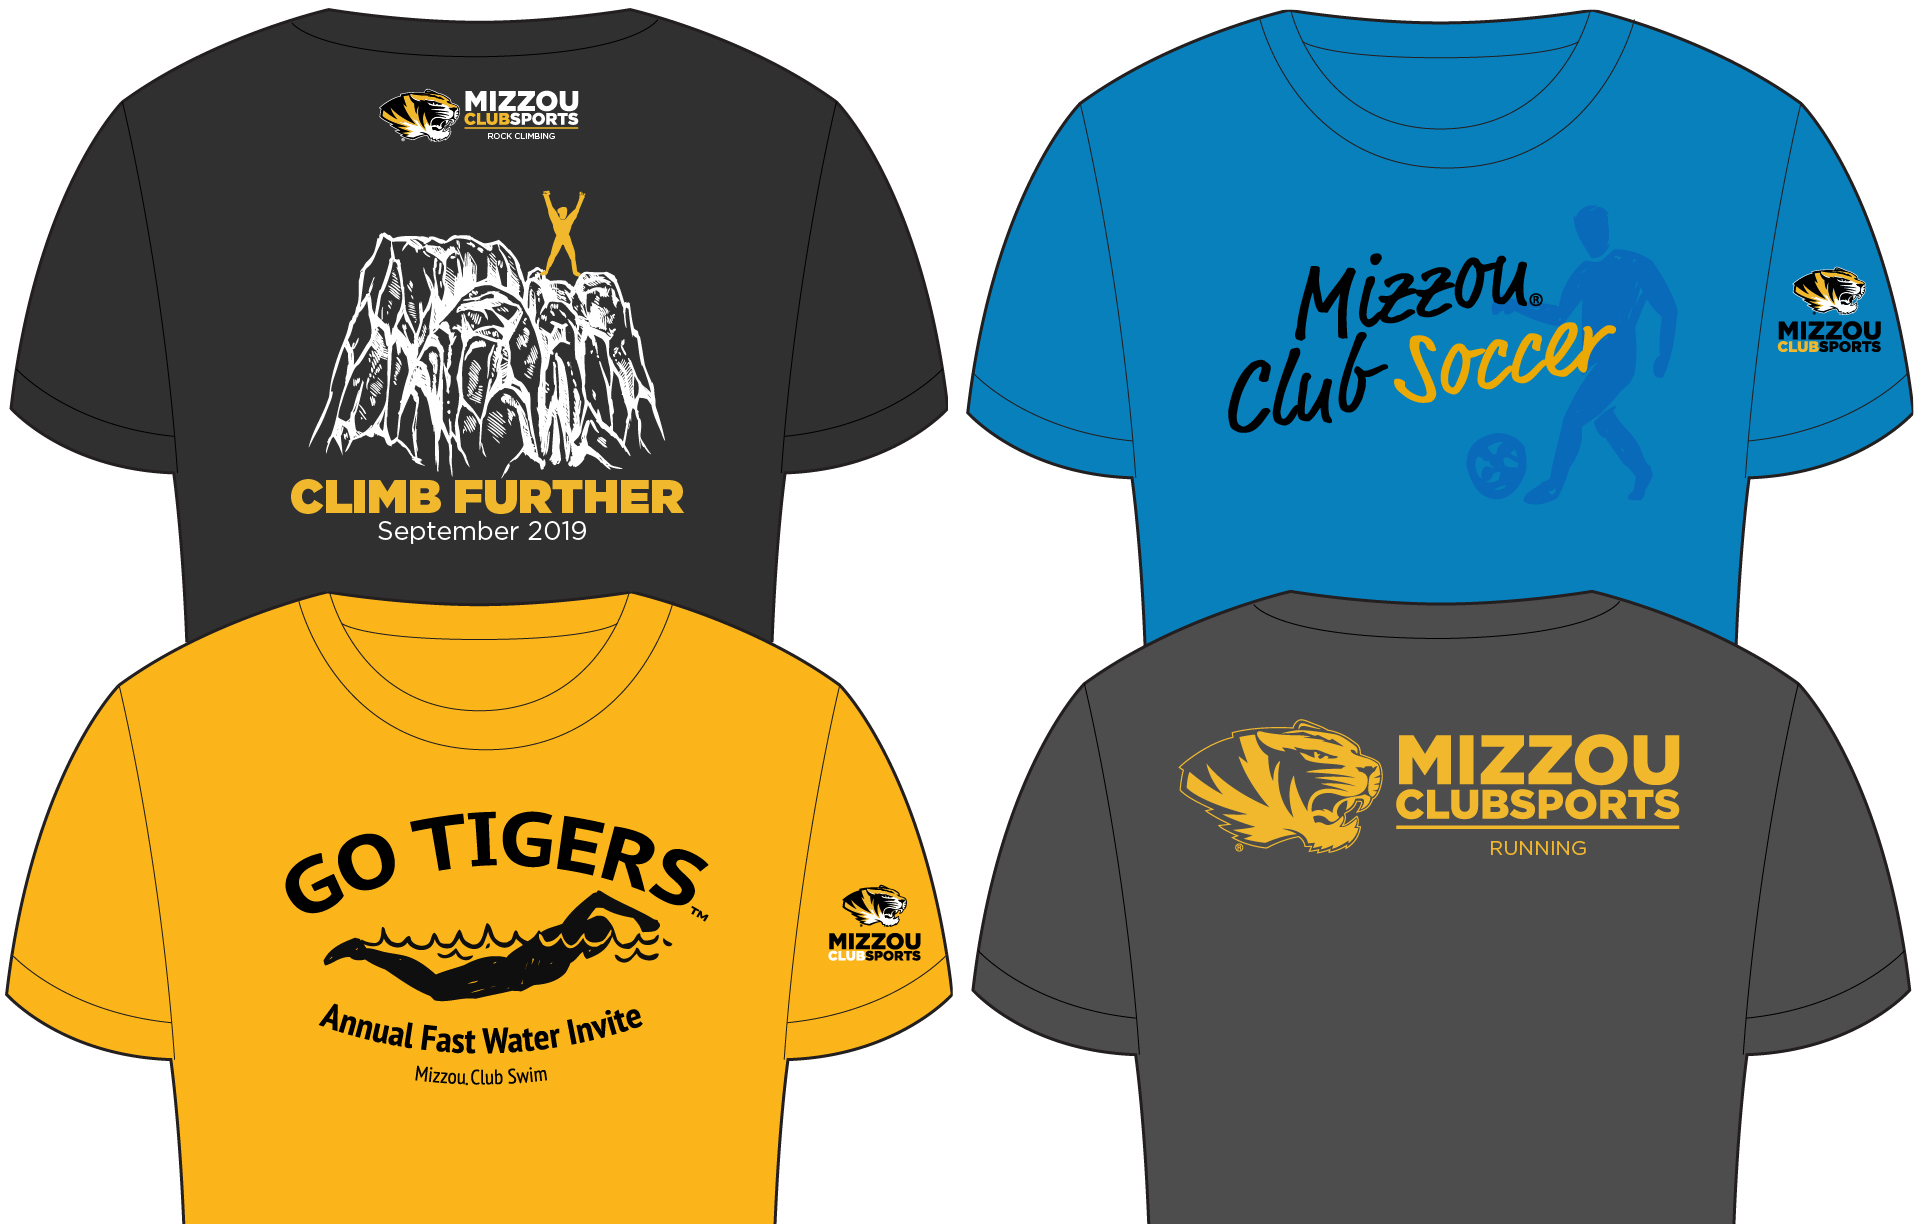 Examples of Mizzou Club Sports t-shirt designs that meet guidelines.